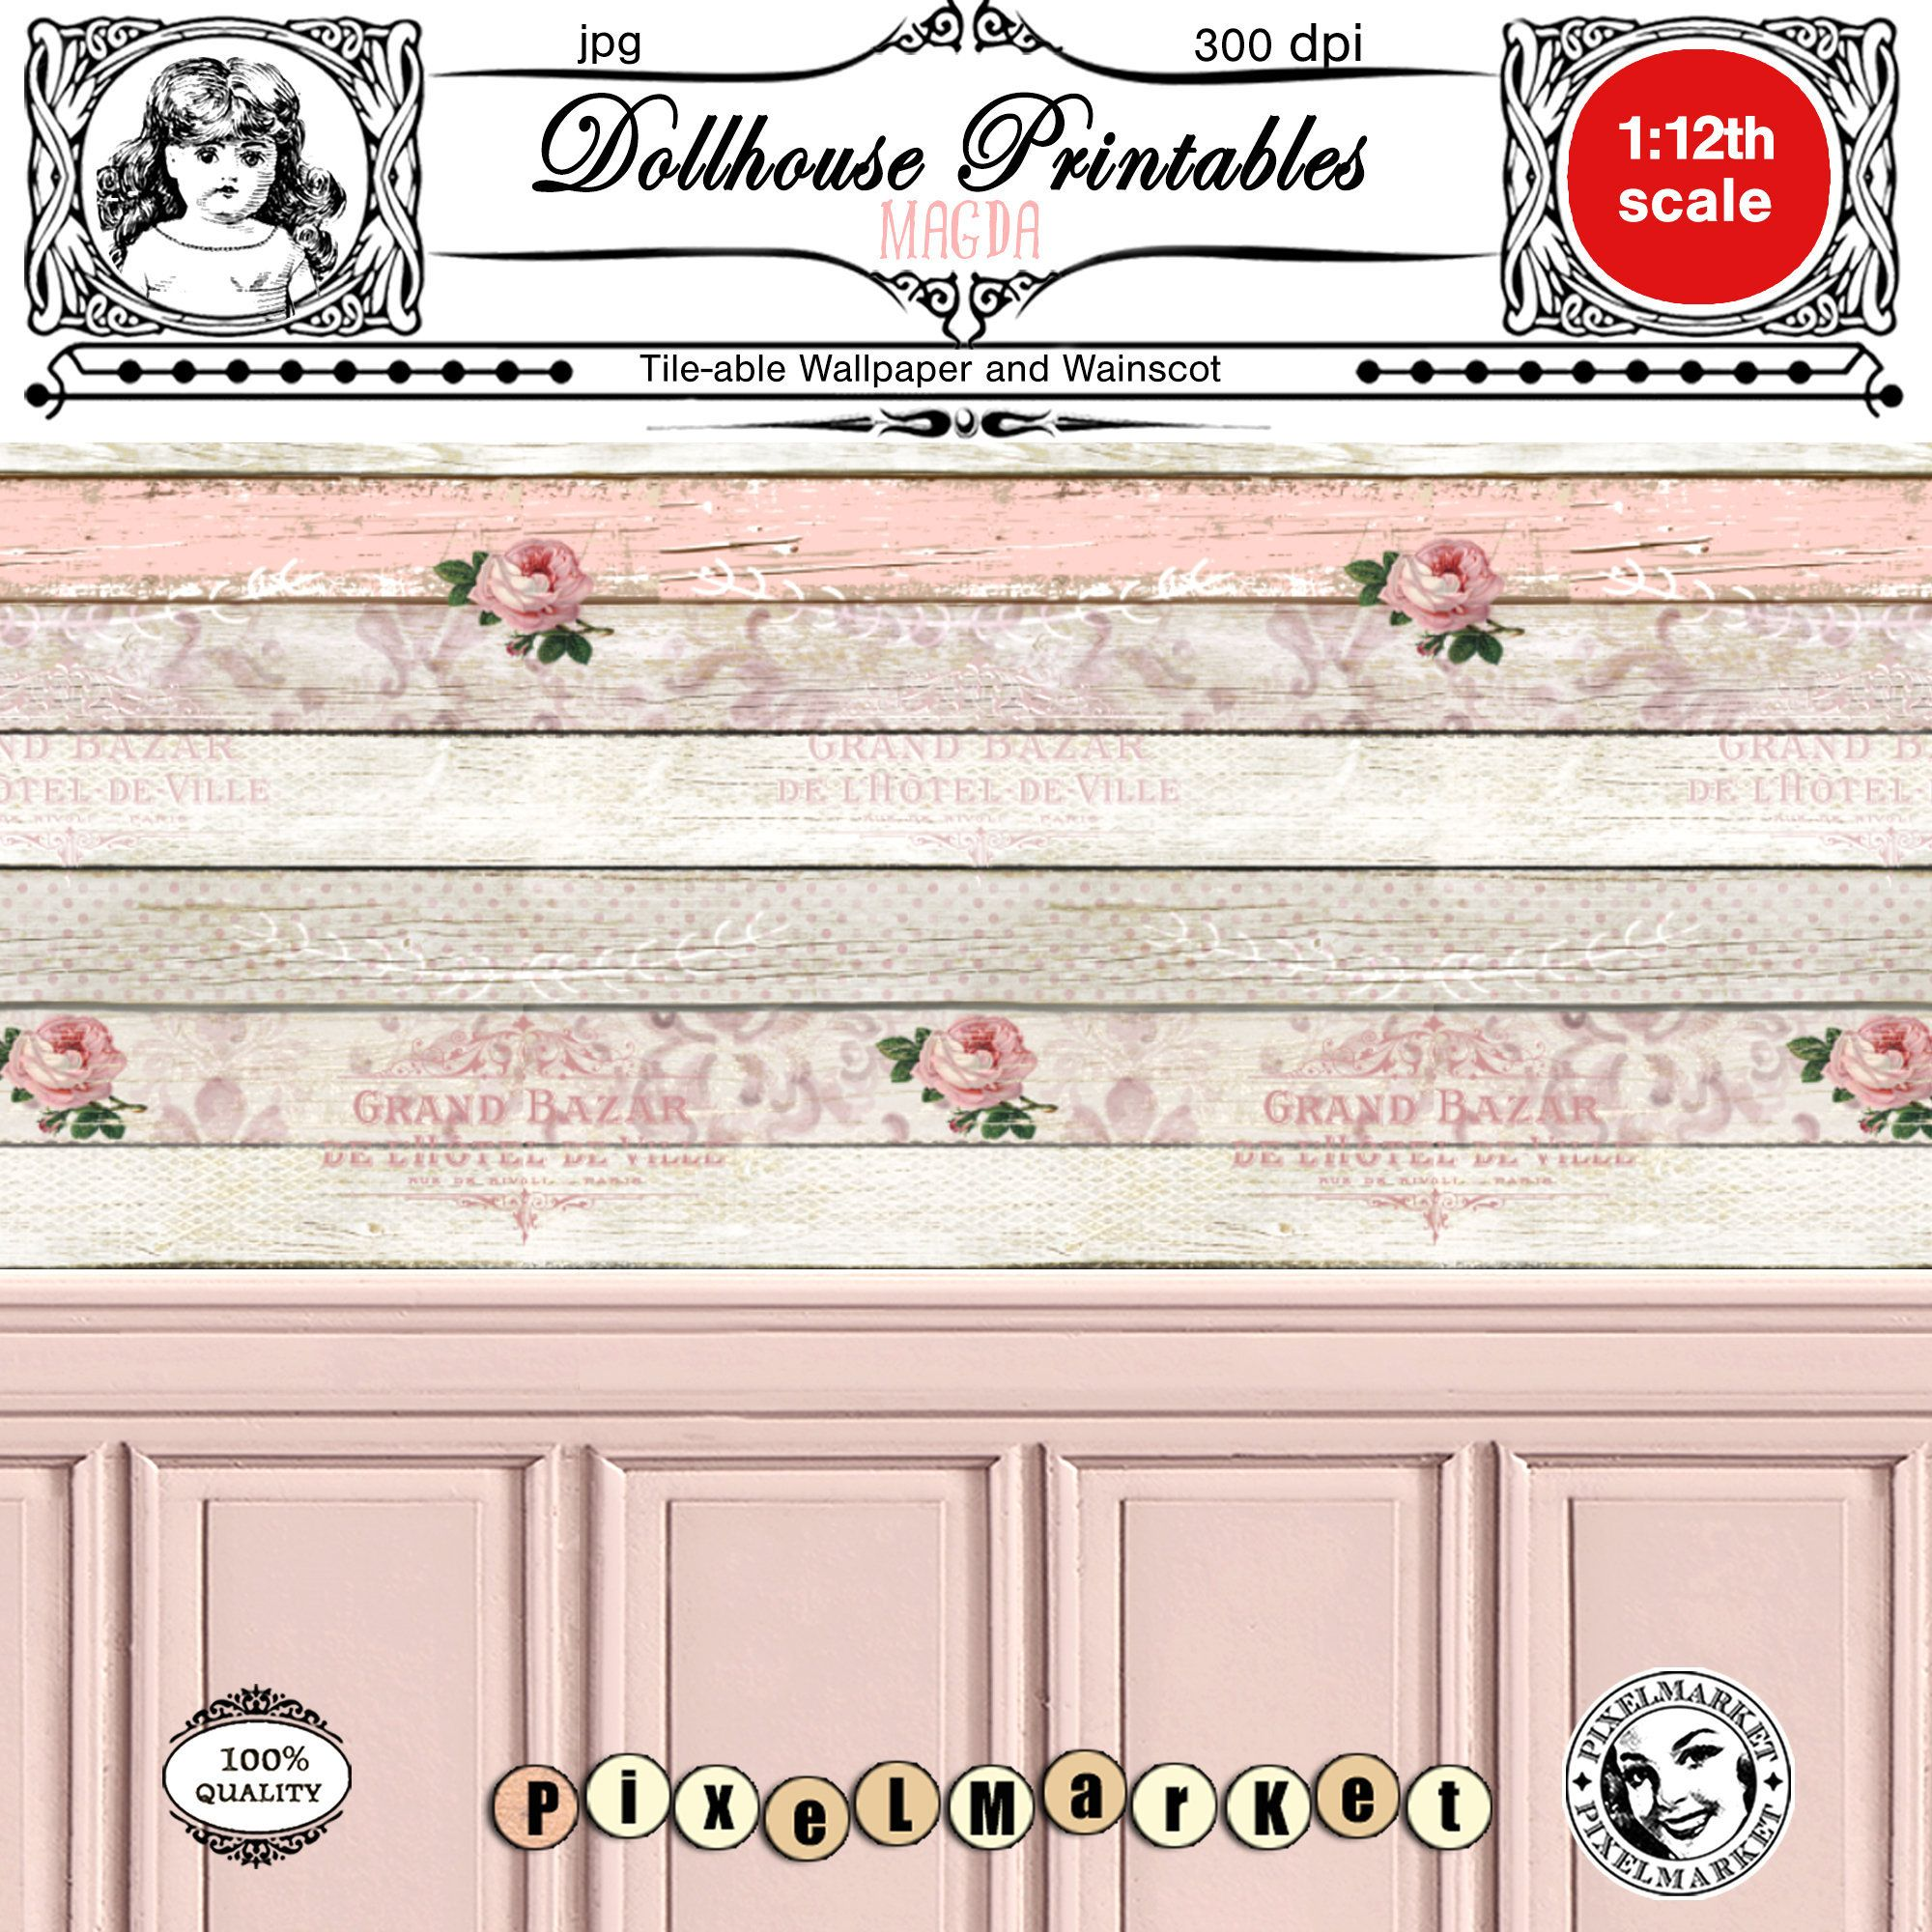 Dollhouse Miniature Wallpaper Scale One Inch Good Fortune